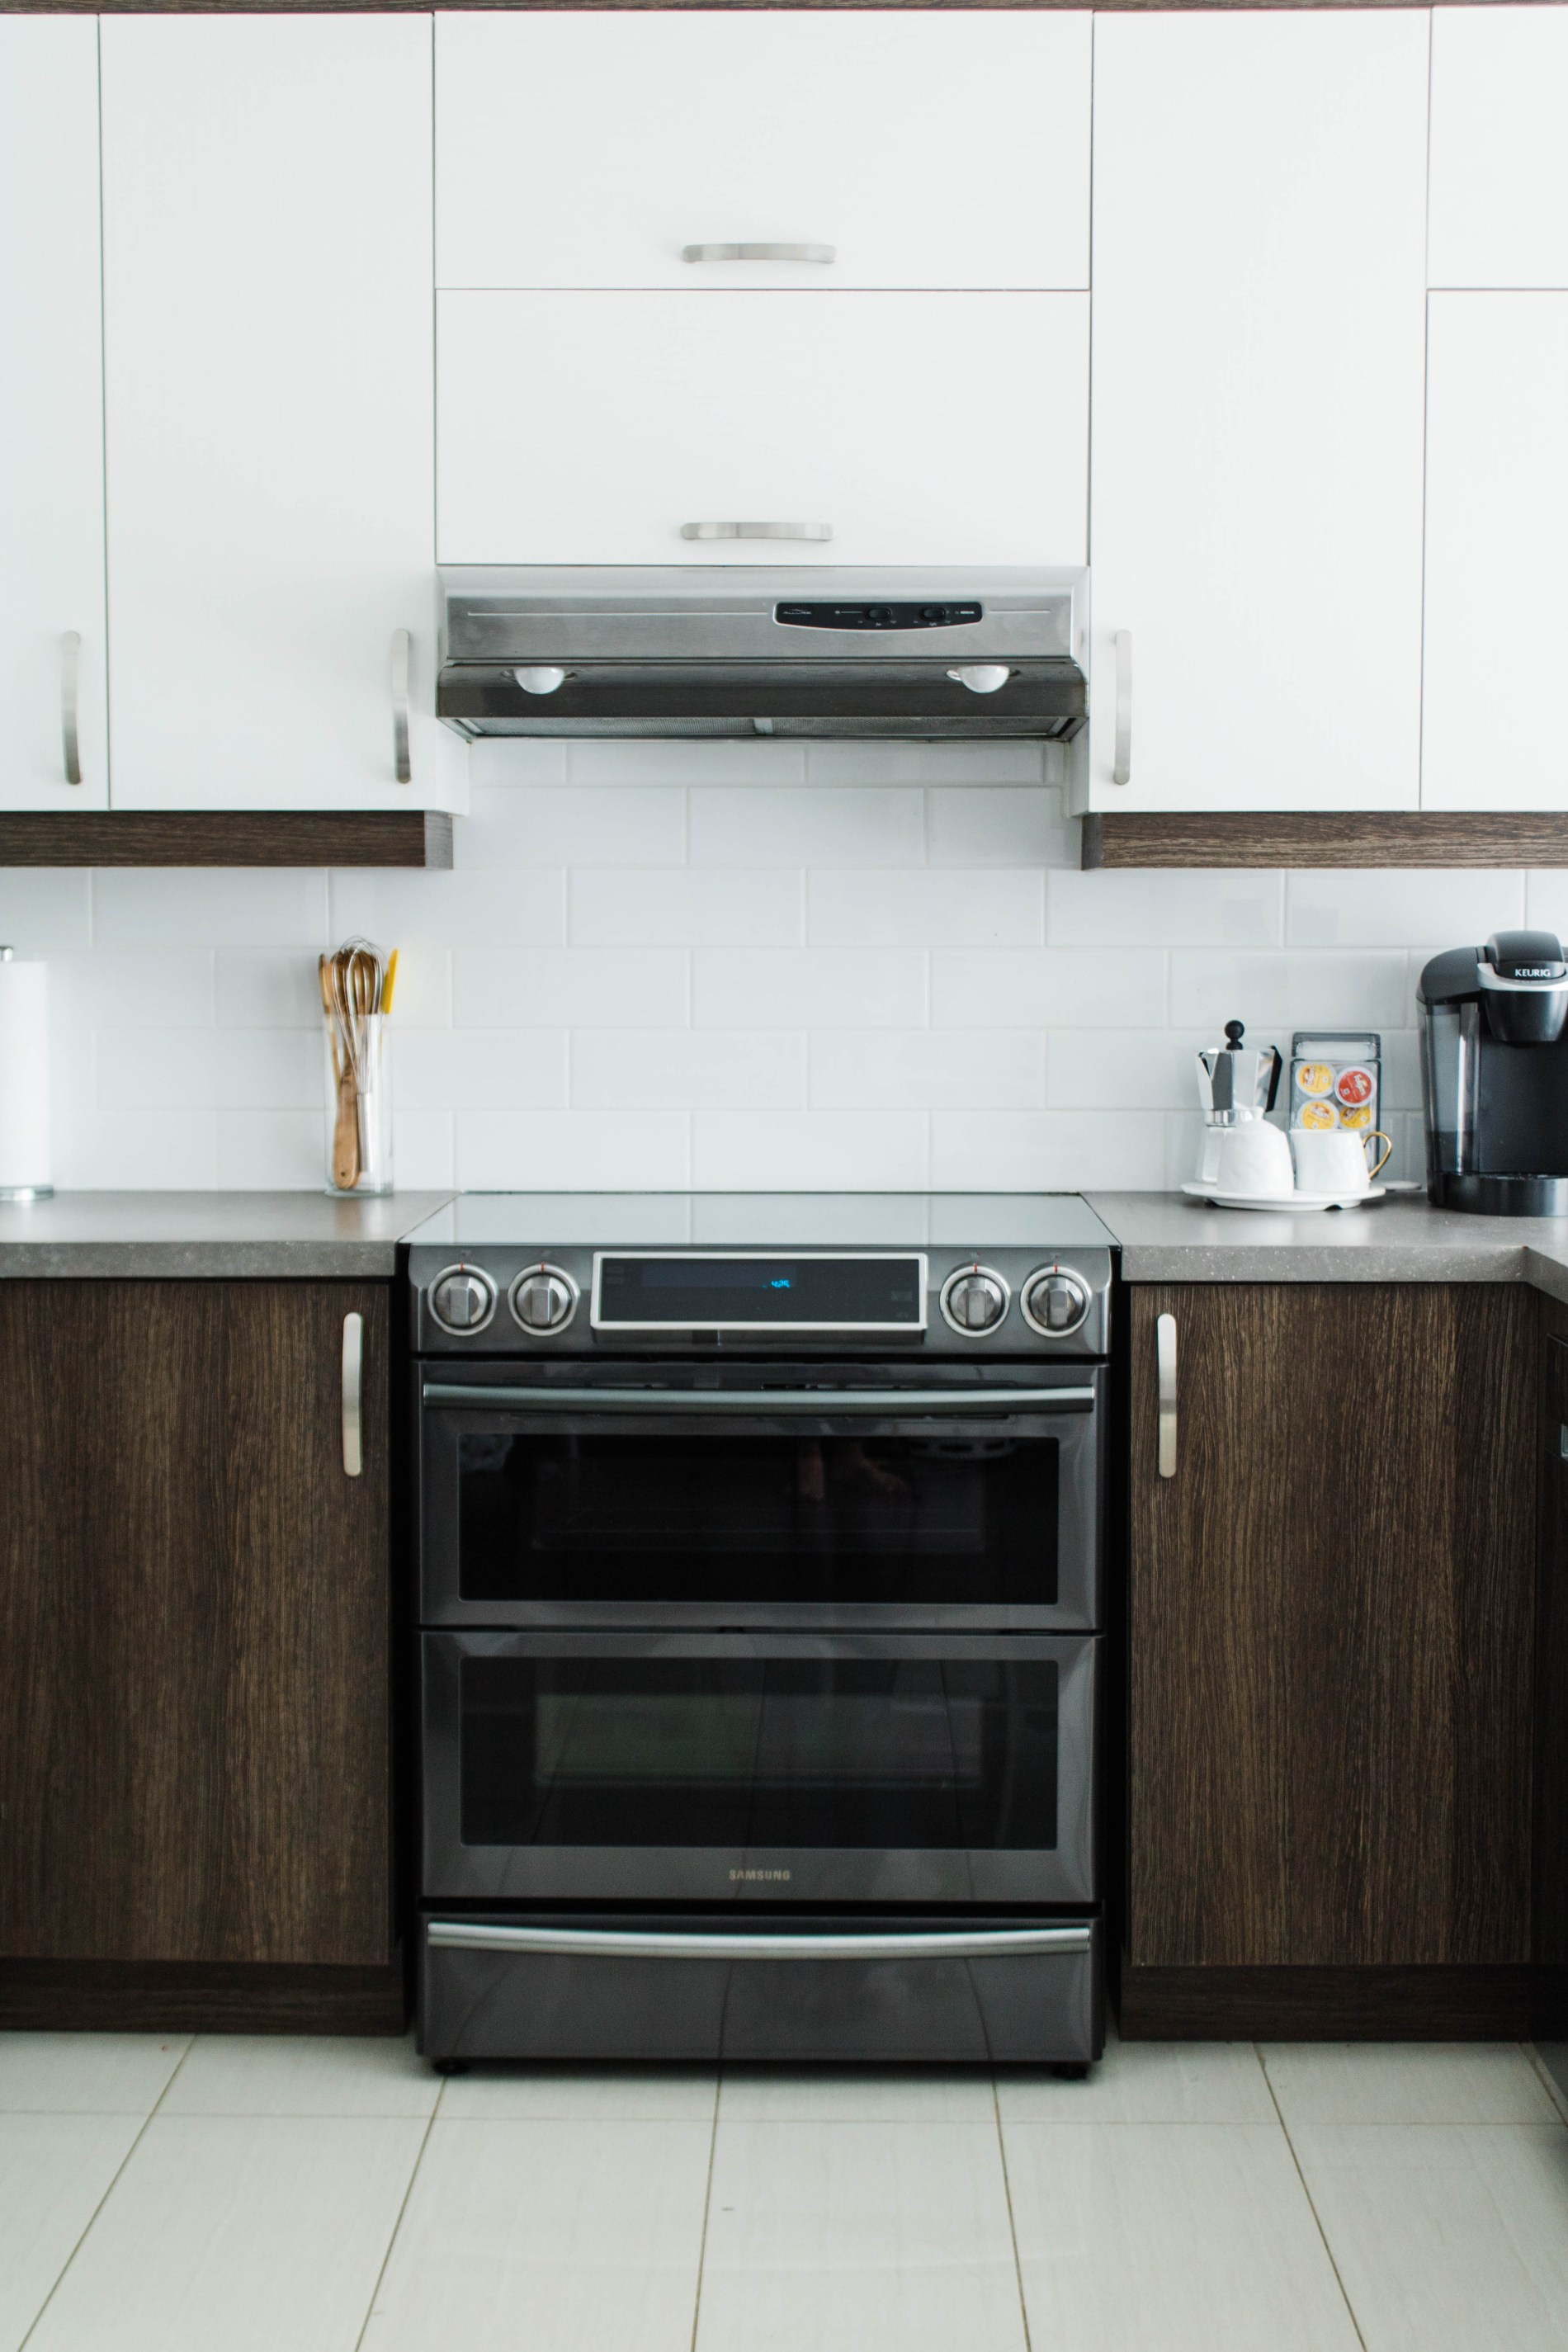 Kitchen Update- Black Stainless Steel Appliance. #samsung #kitchen #homedecor #kitchenphotography